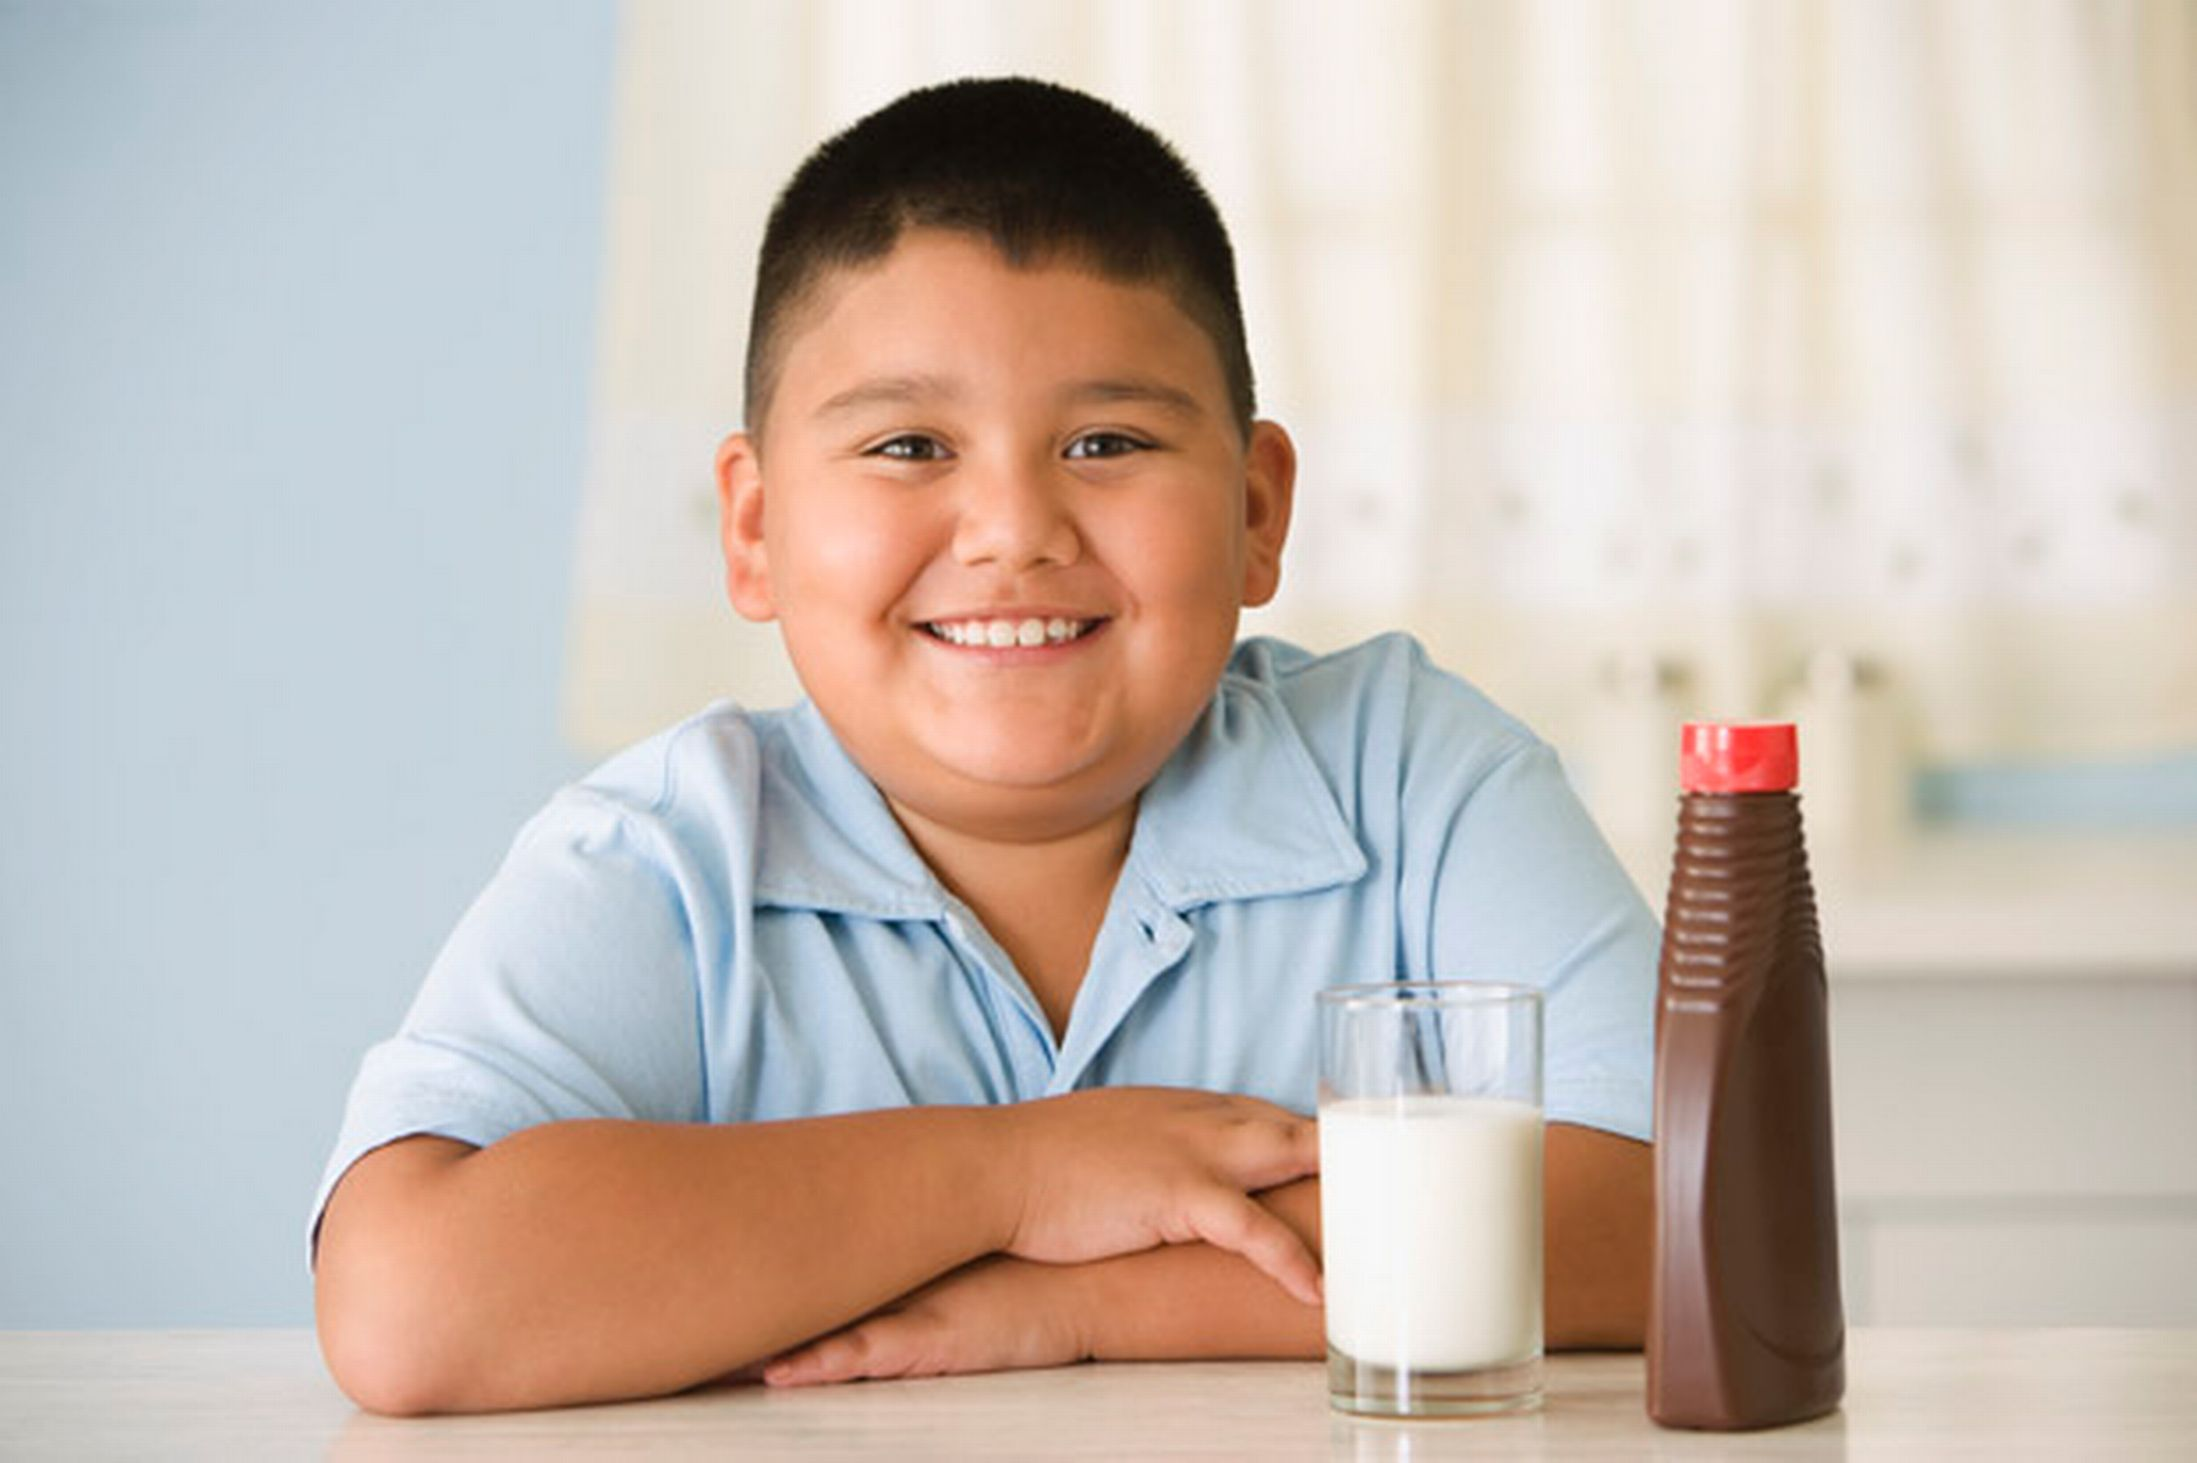 Closeup portrait of a smiling overweight boy